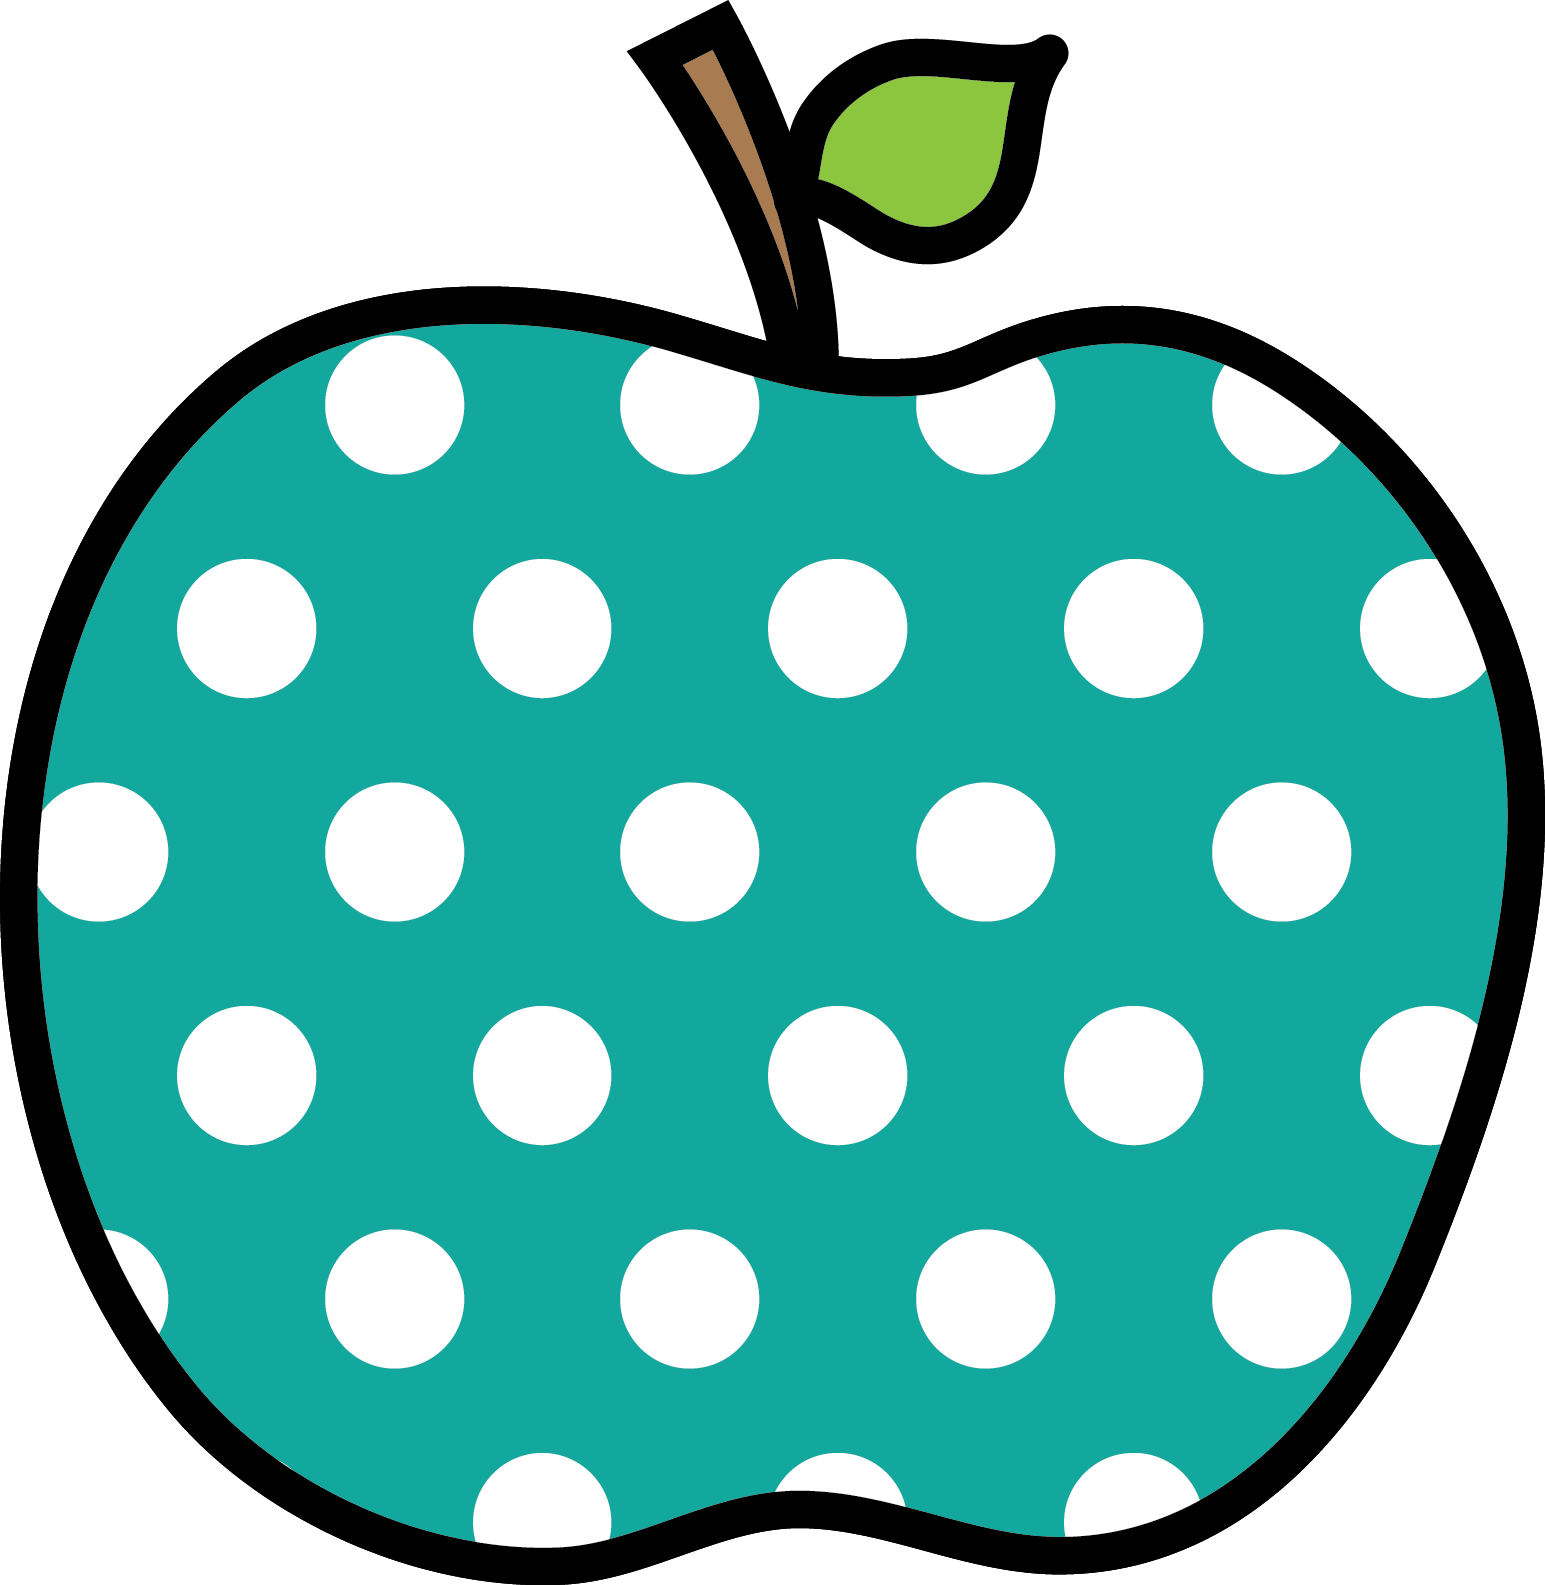 Apple chevron clipart free black and white ✿*UY..QUE TE COMO*✿*   Adán y Eva   Pinterest   Clip art and Banners black and white